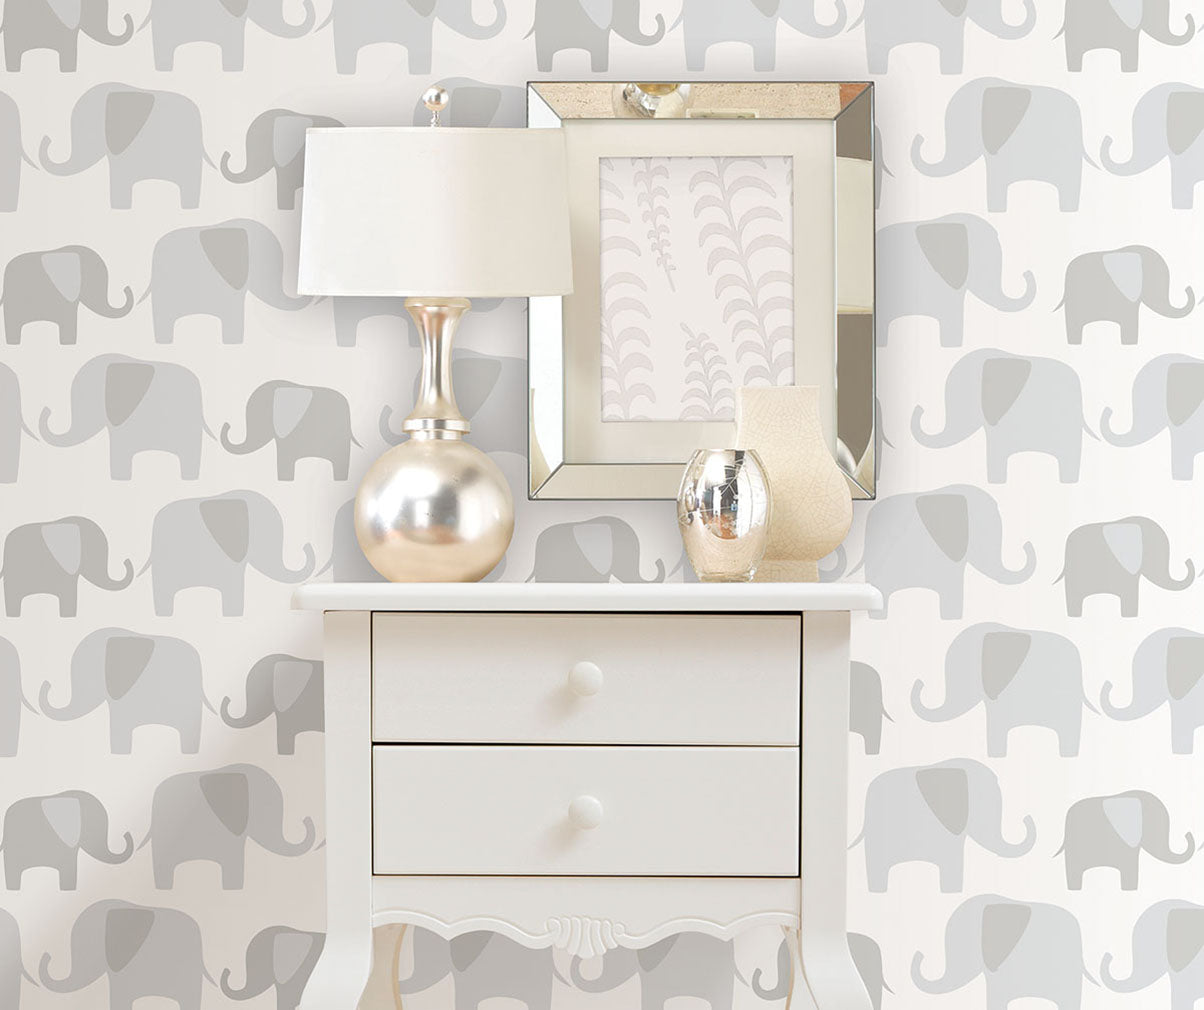 Gray elephant parade peel and stick wallpaper from Barrydowne Paint.